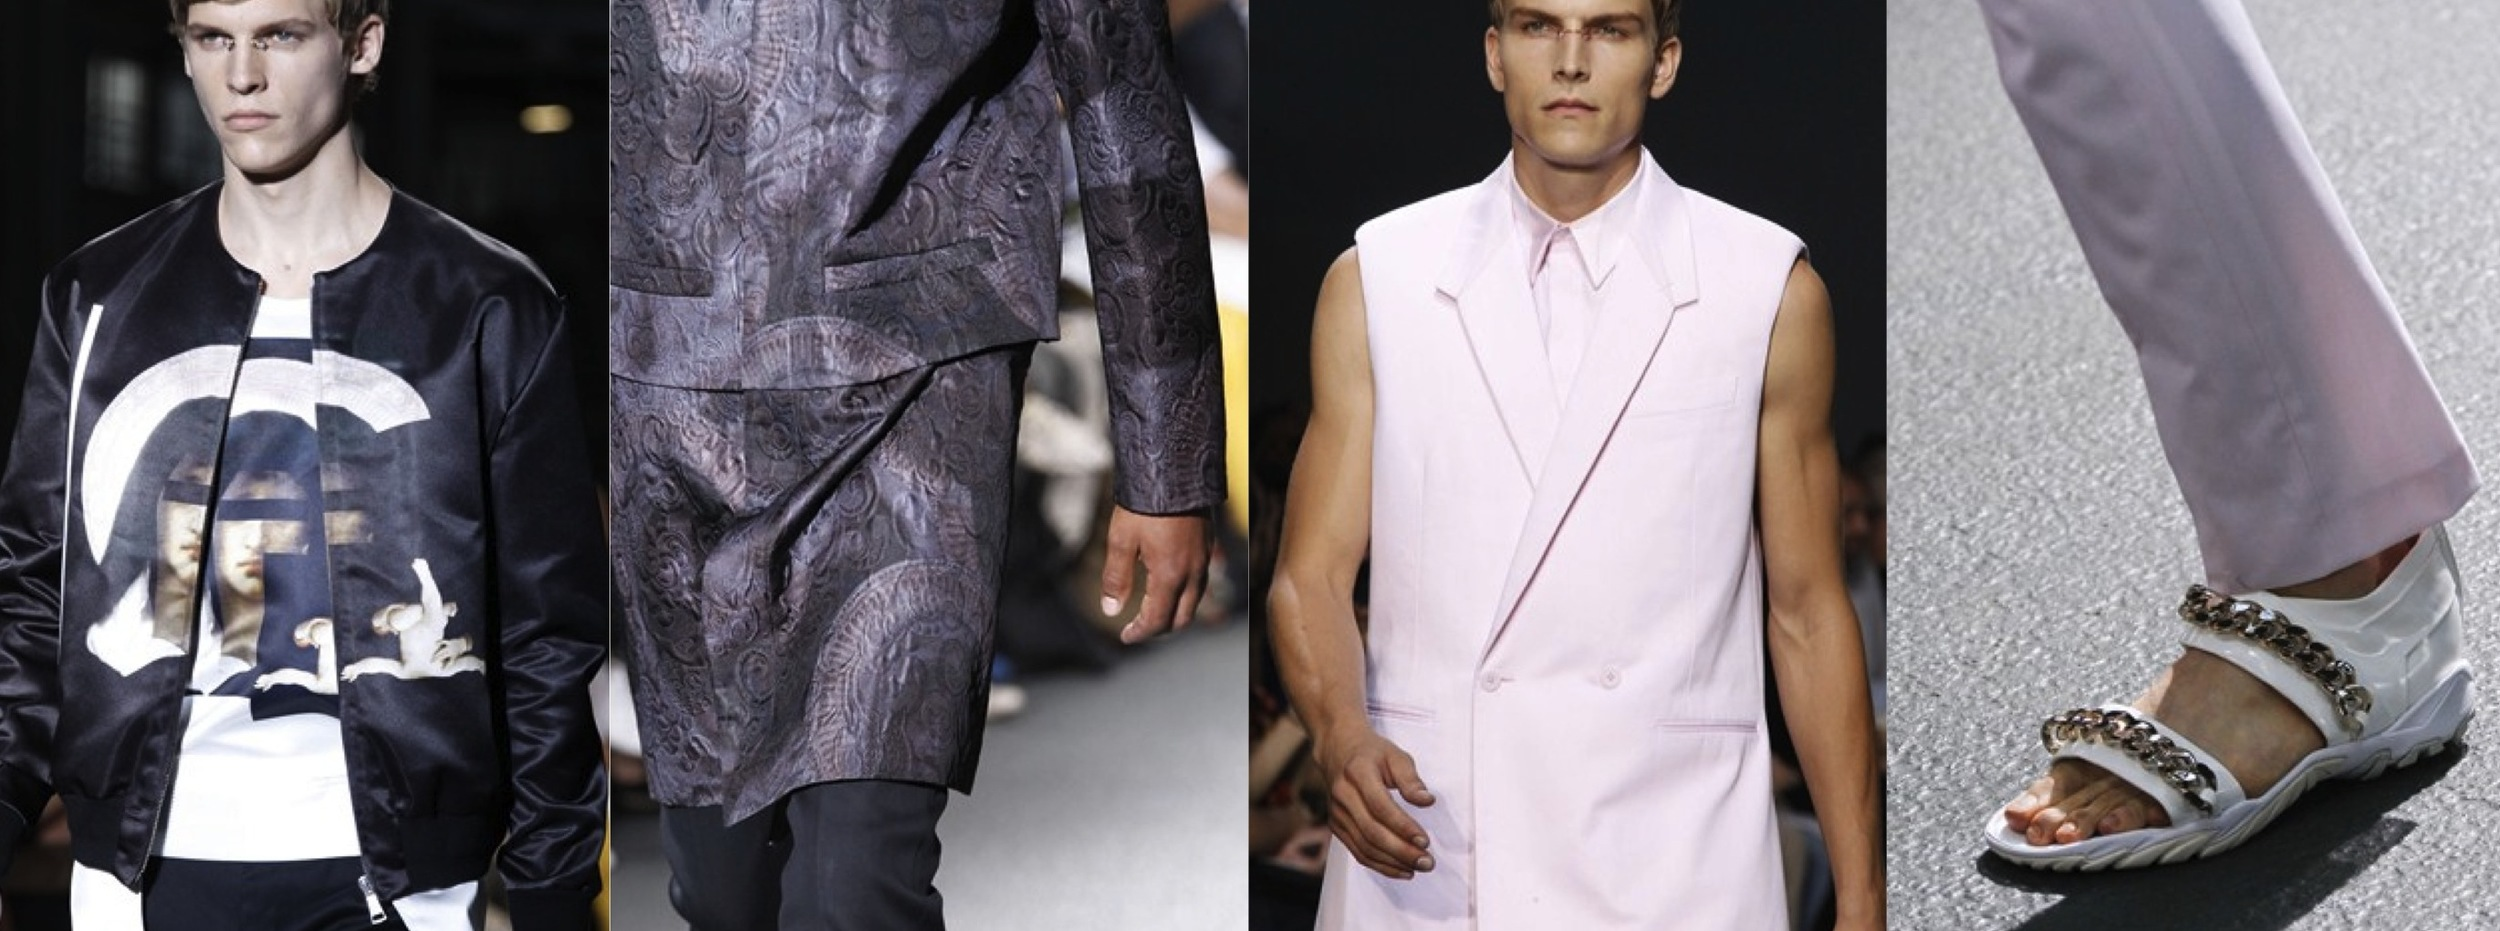 Givenchy SS2013 Menswear Collection Highlights